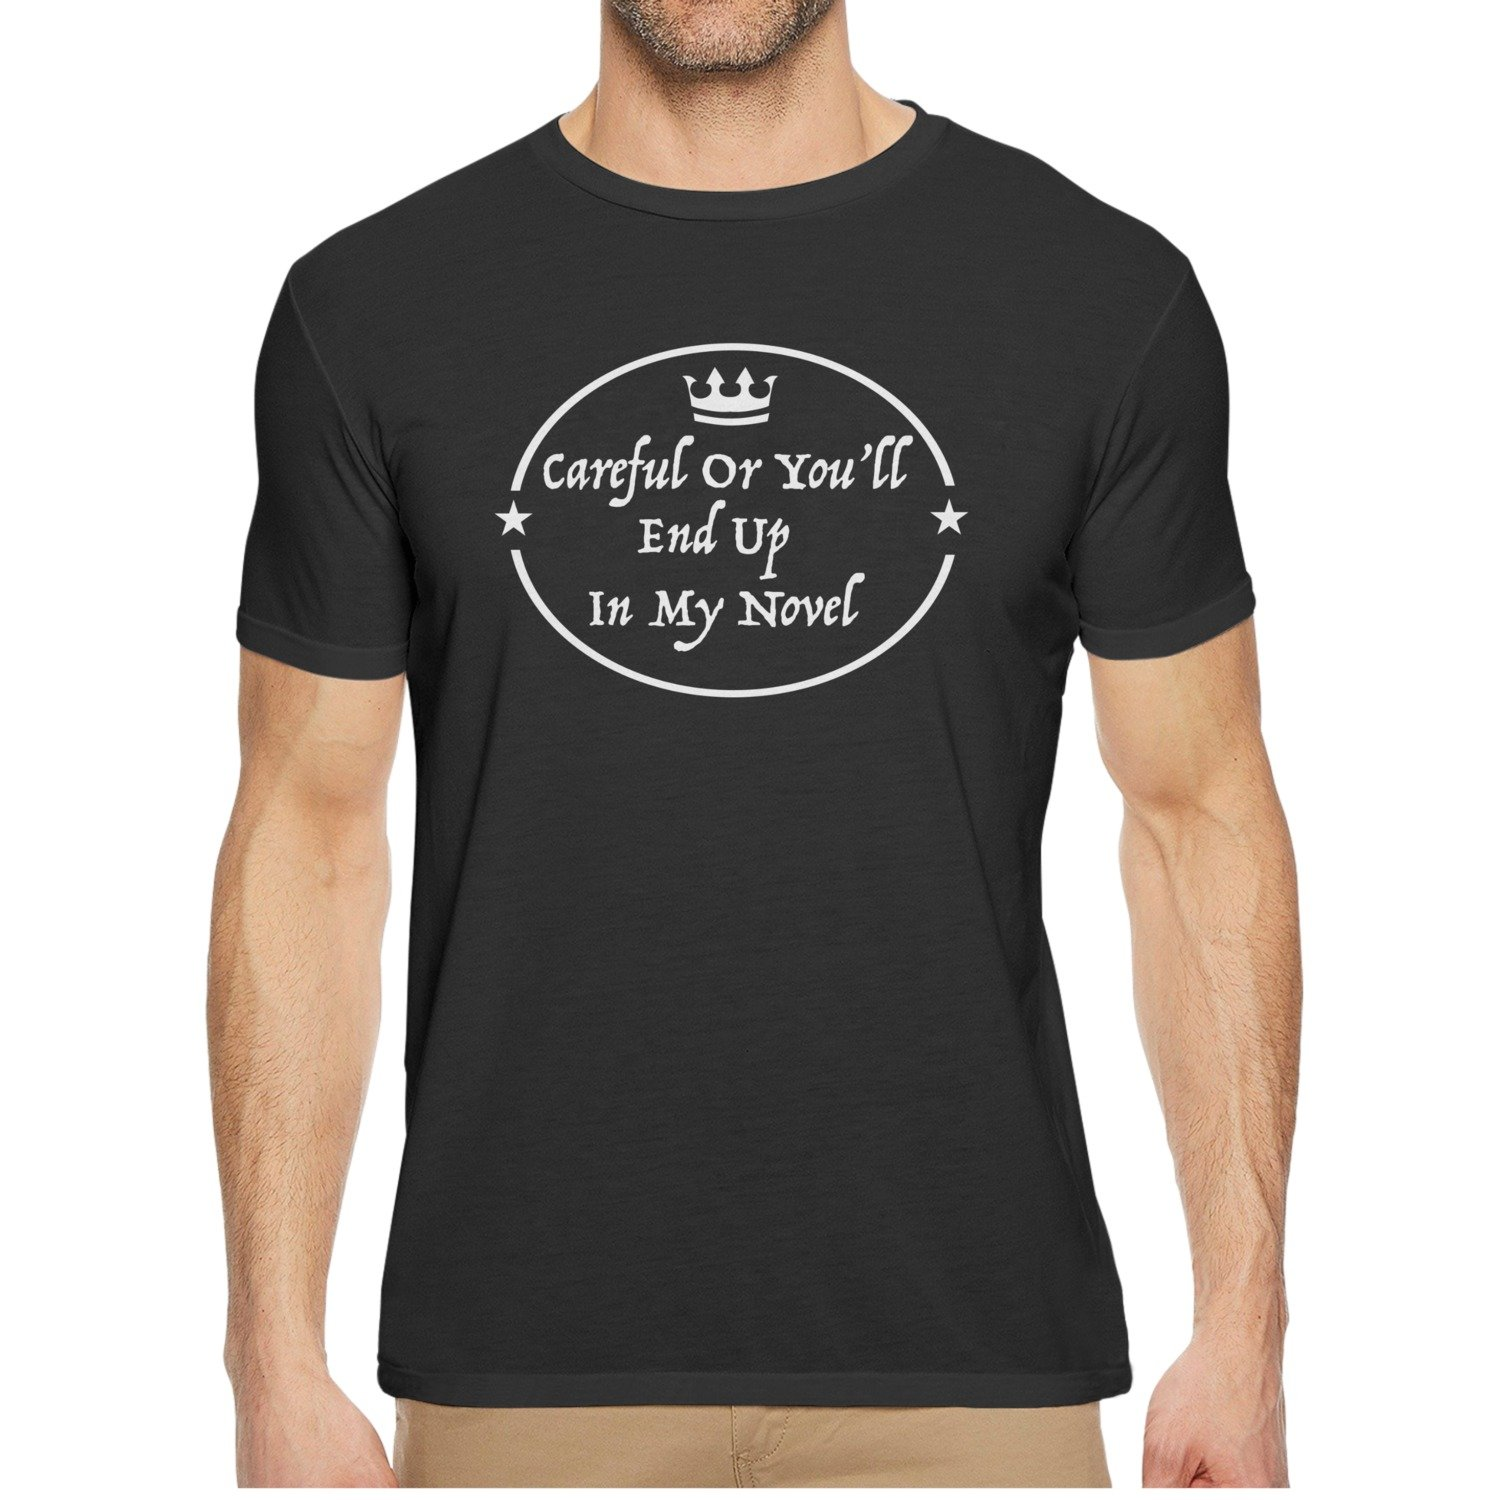 Qqppgg In My Novel Mens Short Sleeve Funny T-shirts